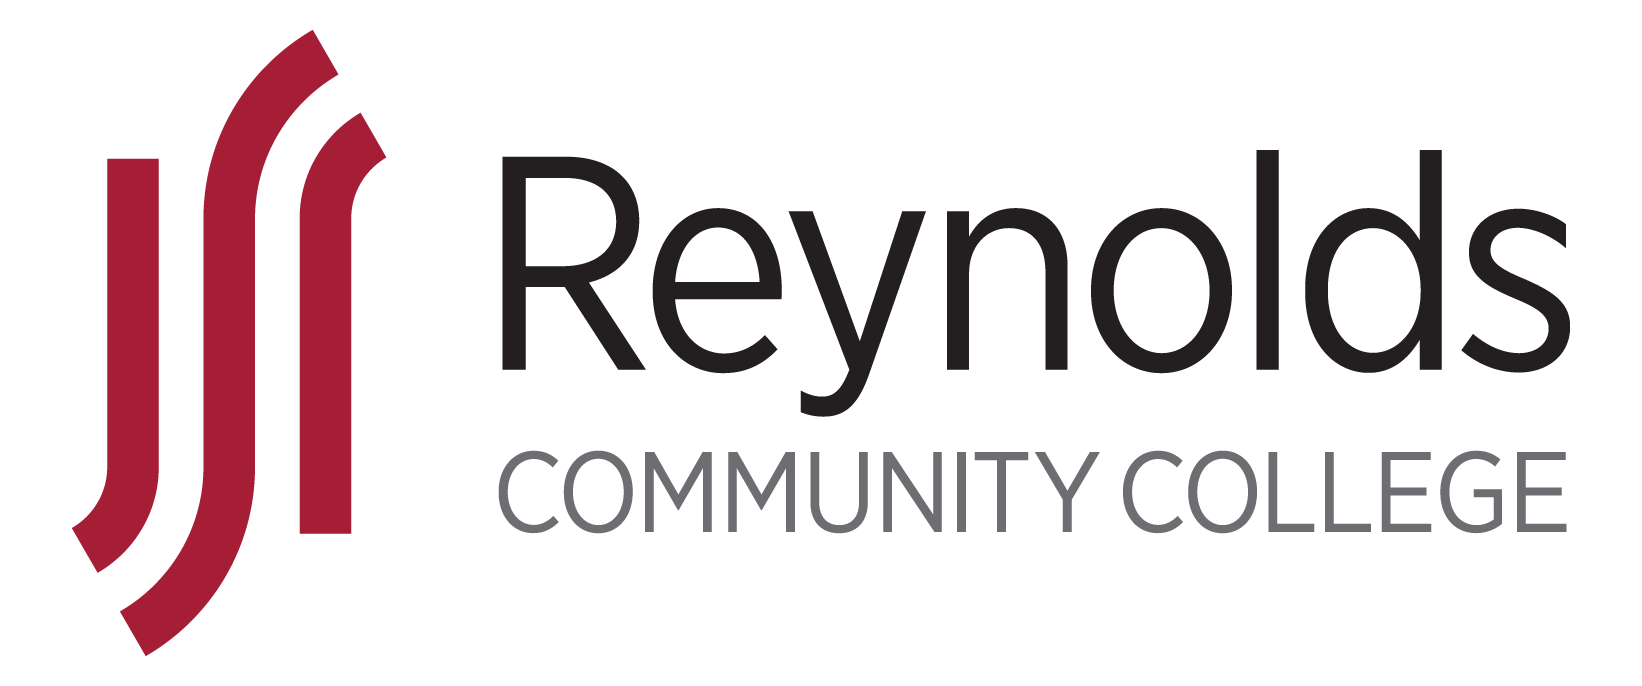 Reynolds Community College